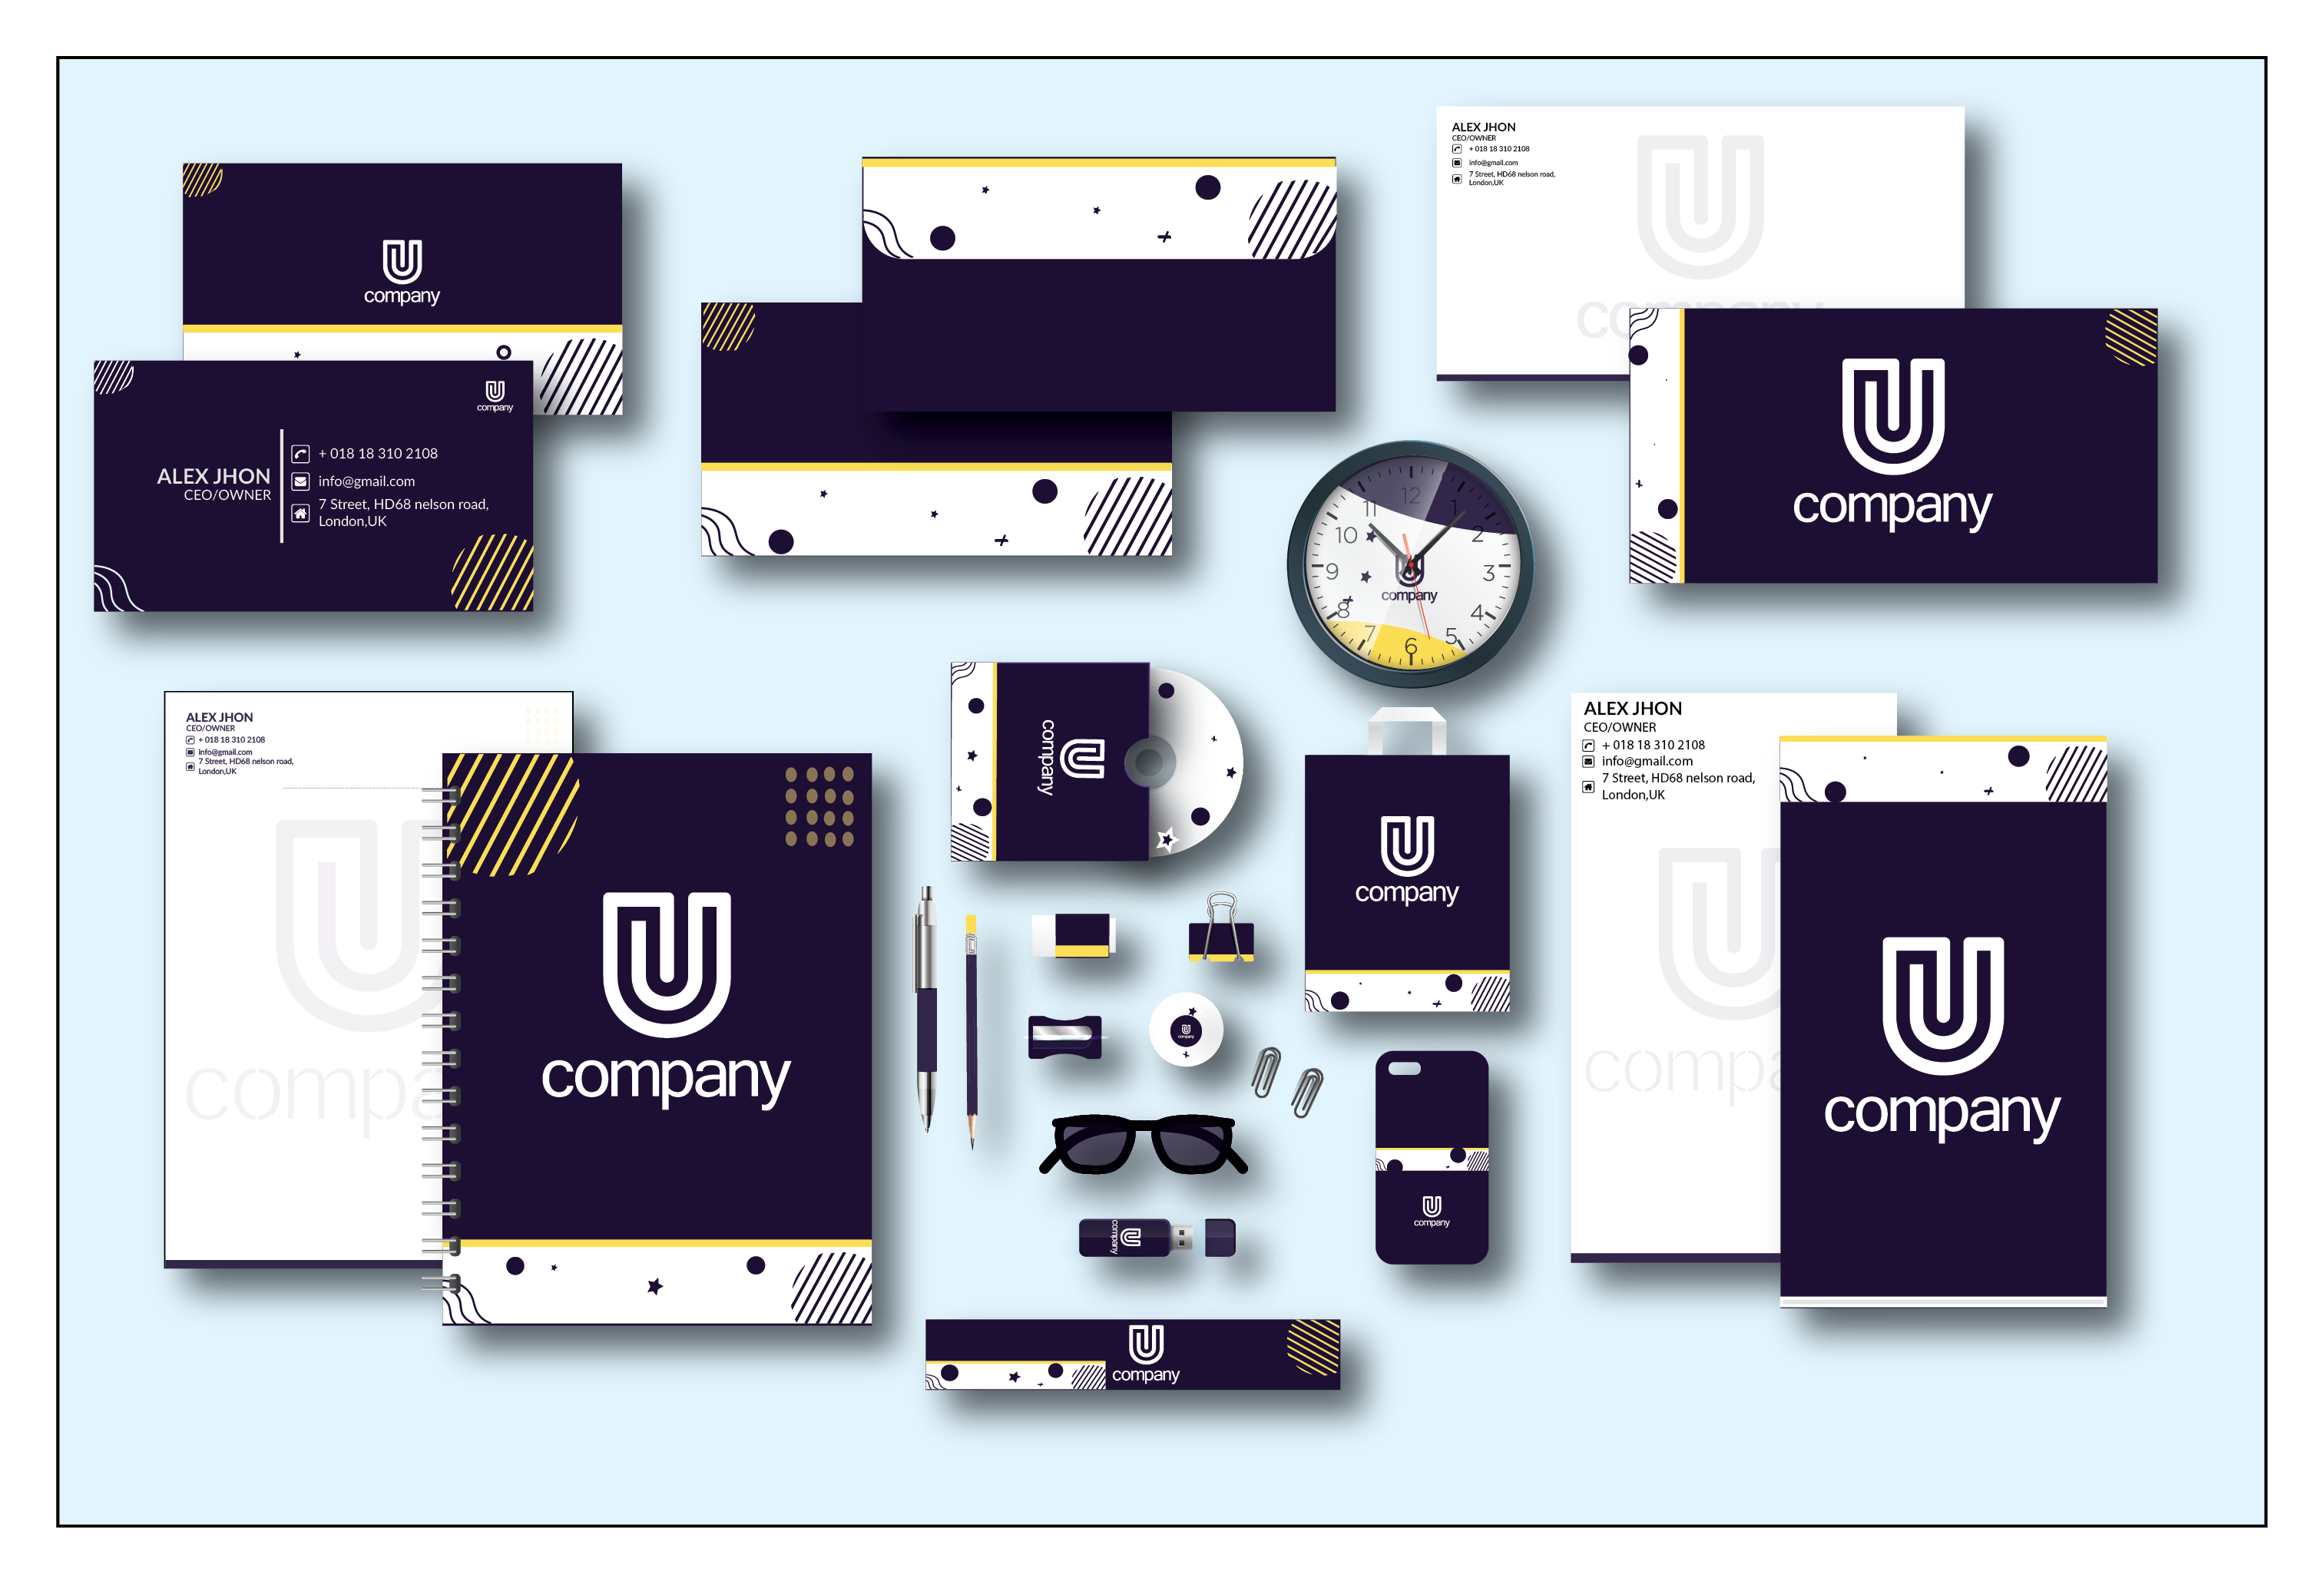 I Will design professional business card and stationery.